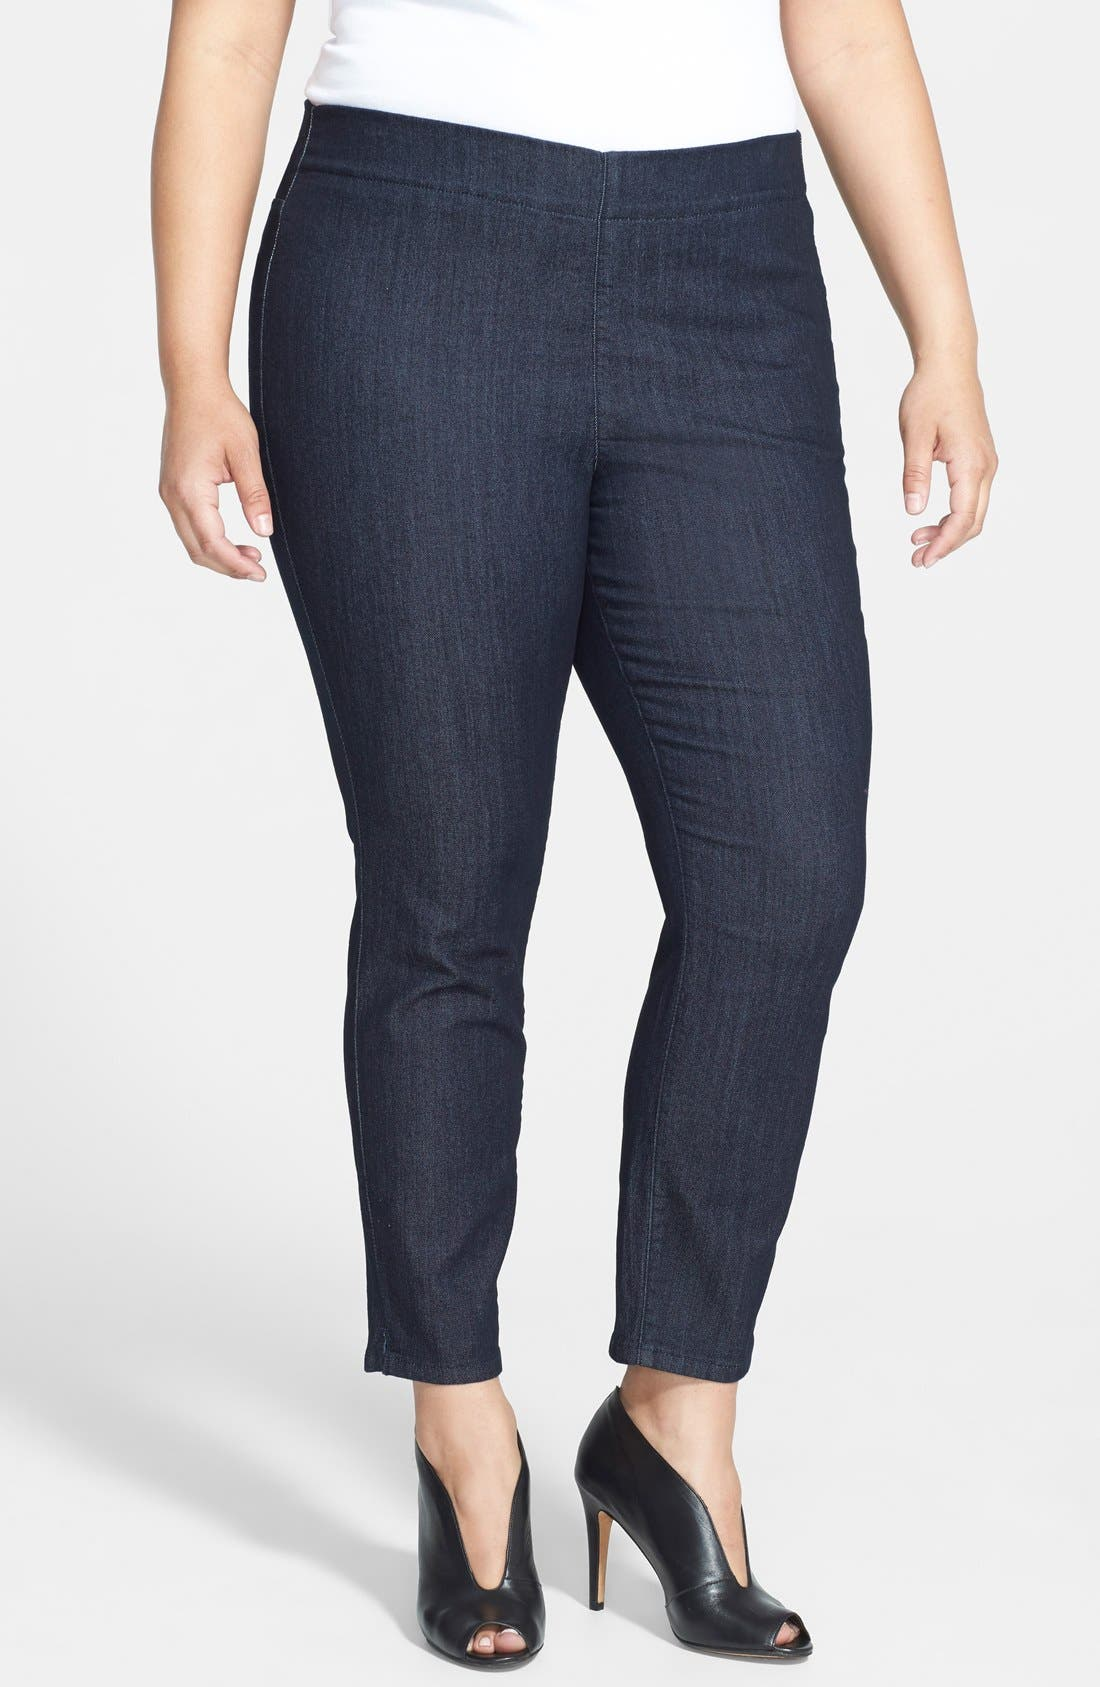 Alternate Image 1 Selected - NYDJ 'Millie' Stretch Ankle Jeans (Dark Enzyme) (Plus Size)